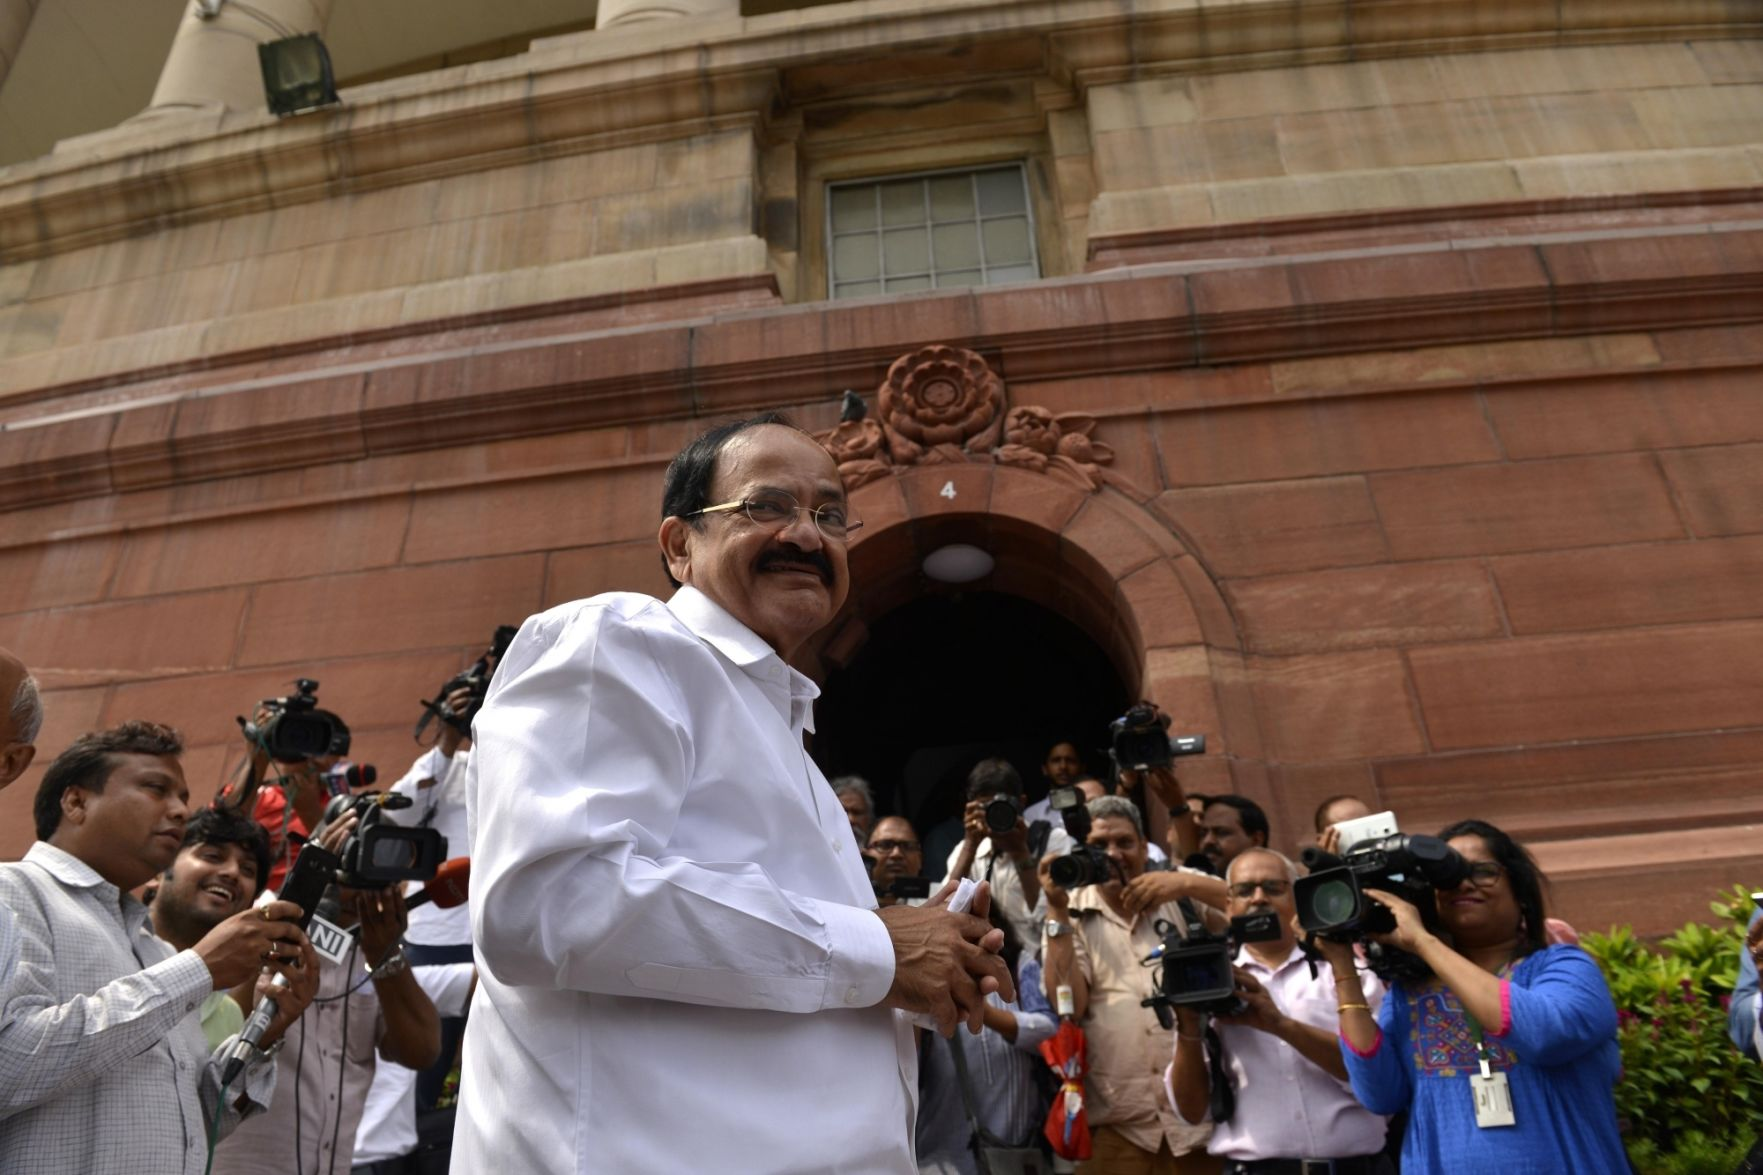 India's naidu elected vice president in another boost for Modi